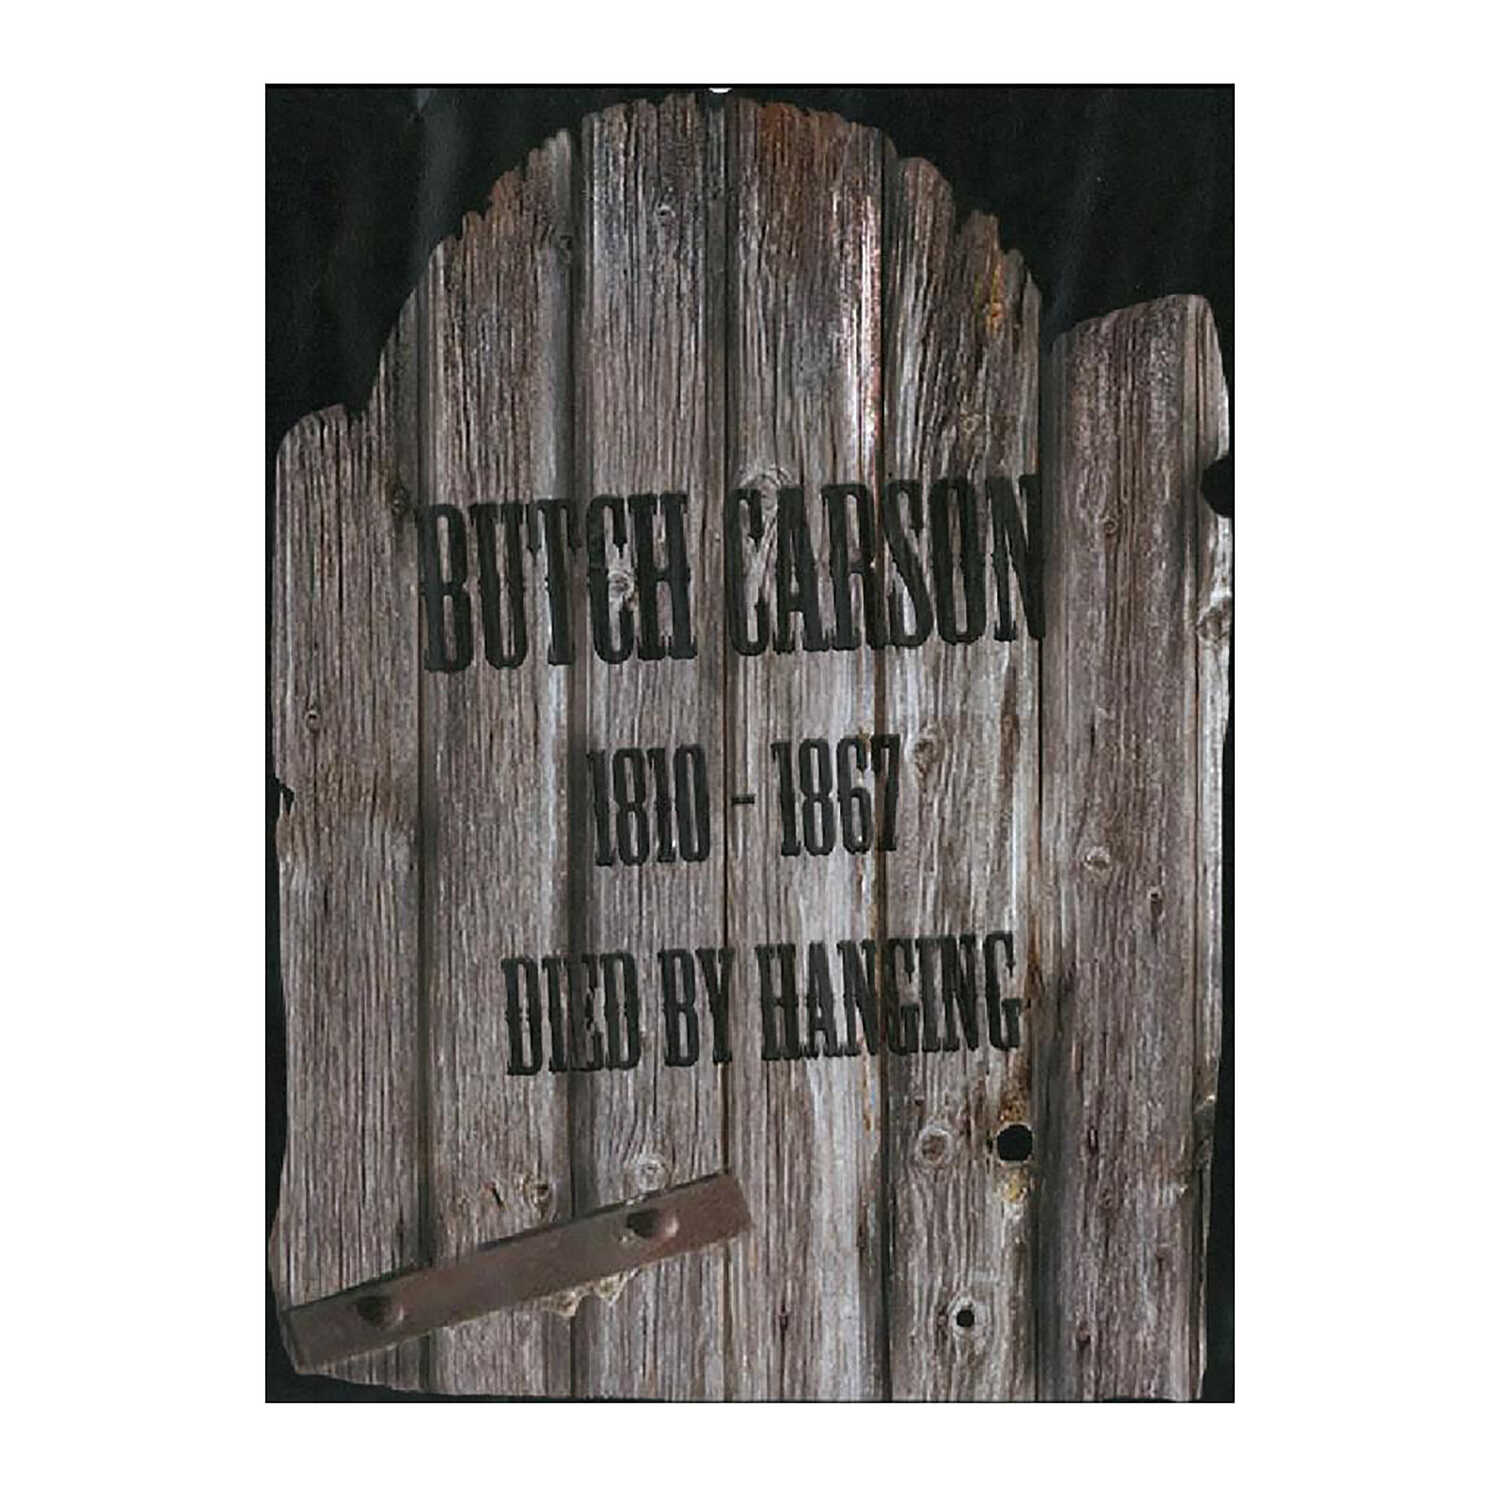 Fun World  Butch Carson 1810-1867 Died By Hanging Tombstone  22 in. H x 1 in. W x 14 in. L 1 pk Hall